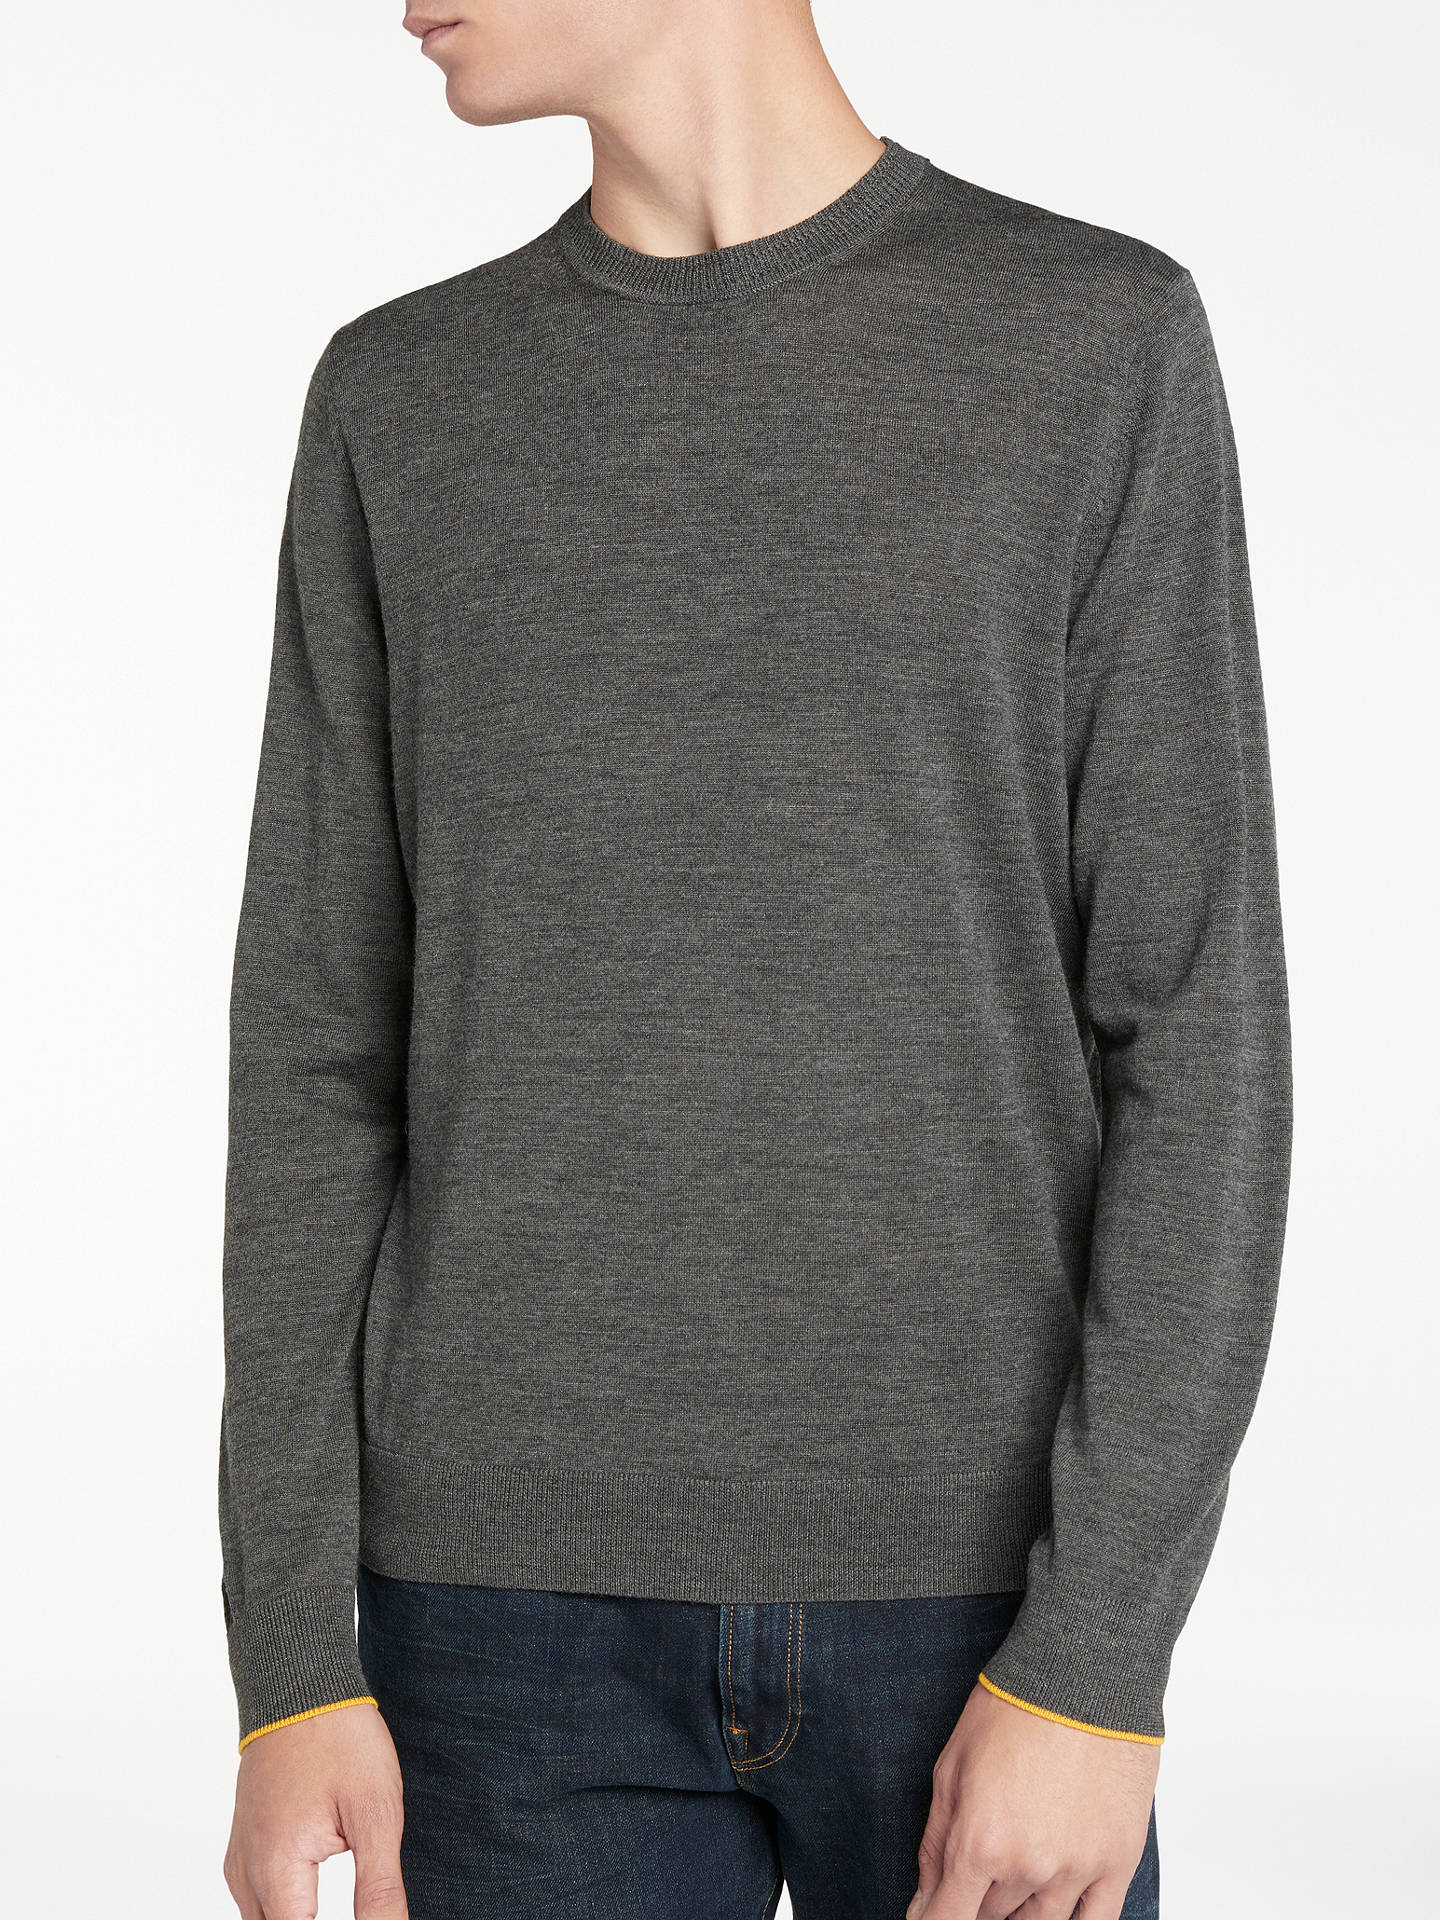 3320630aa22 PS by Paul Smith Merino Crew Neck Jumper at John Lewis   Partners